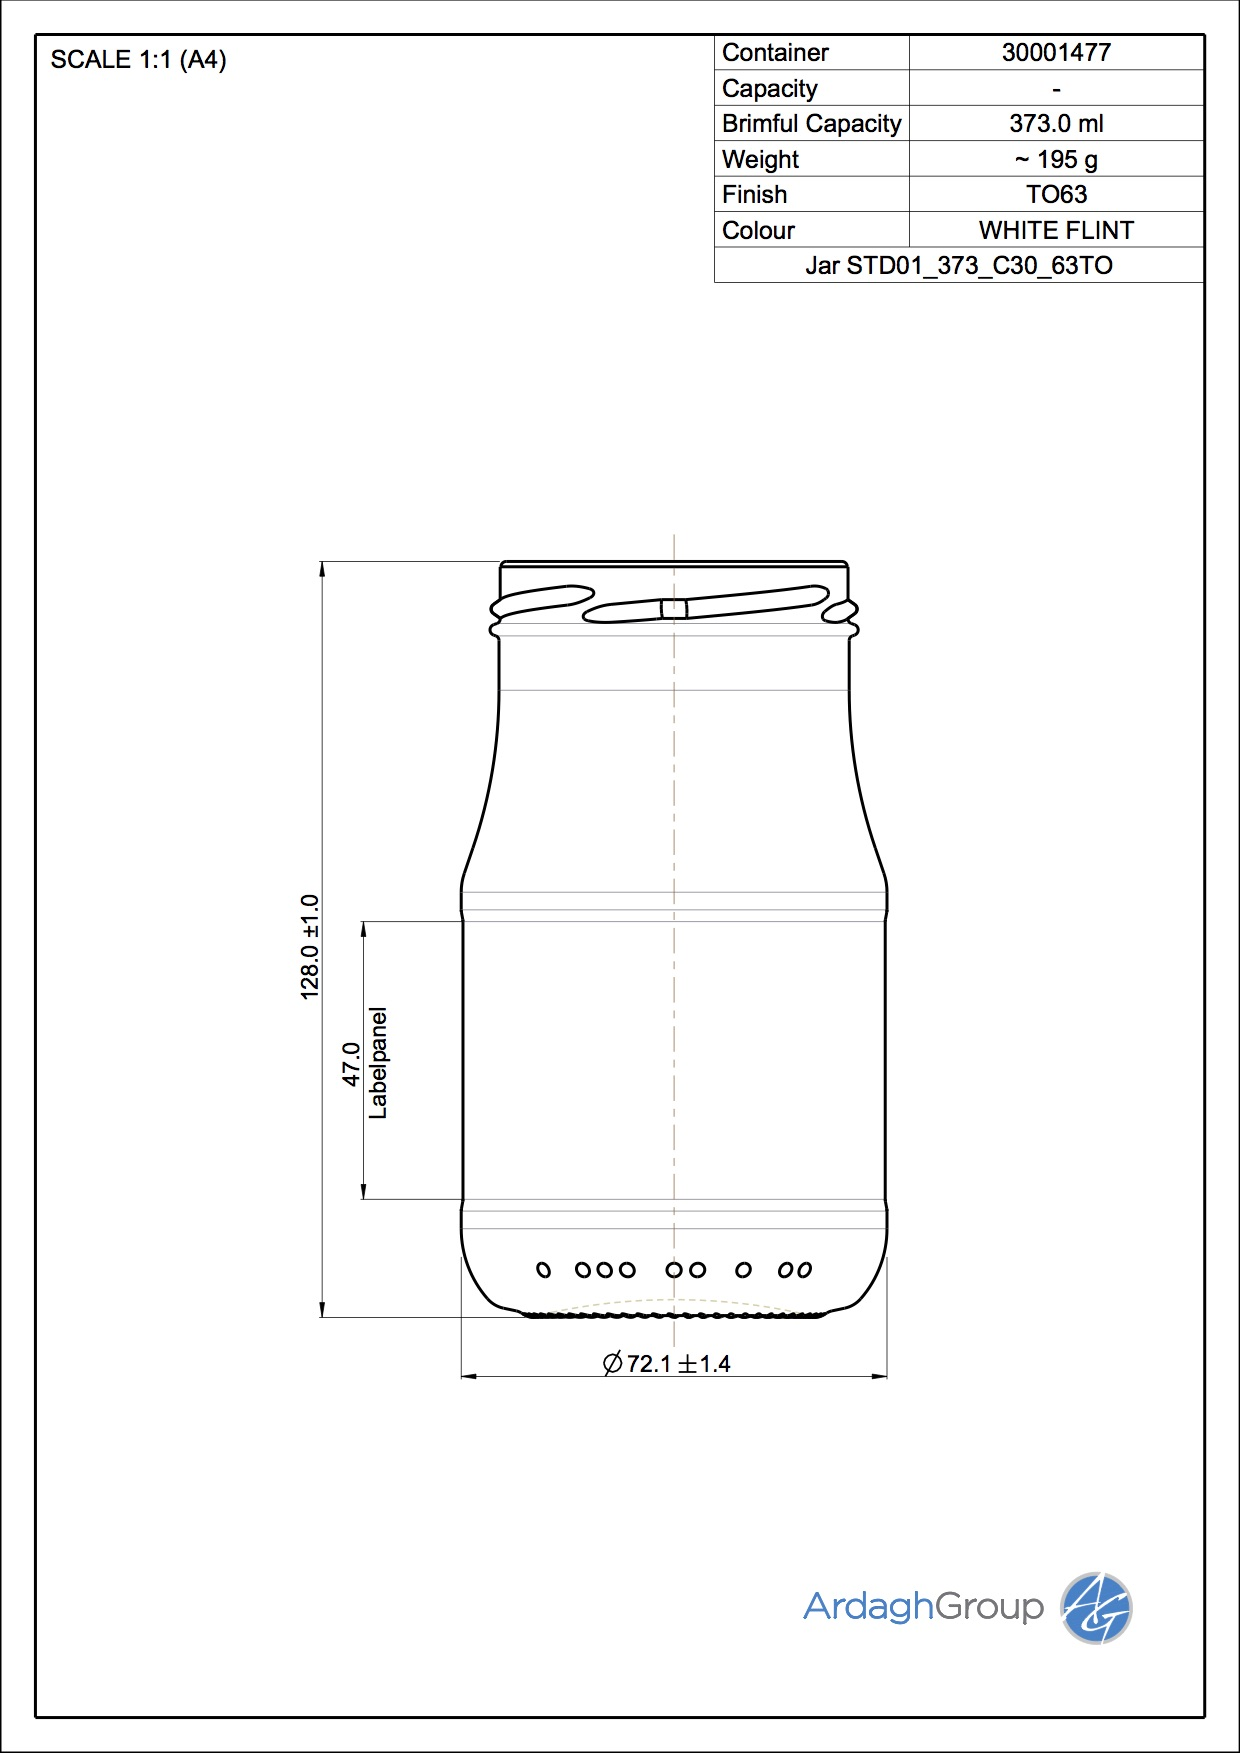 Jar STD01 373 C30 63TO